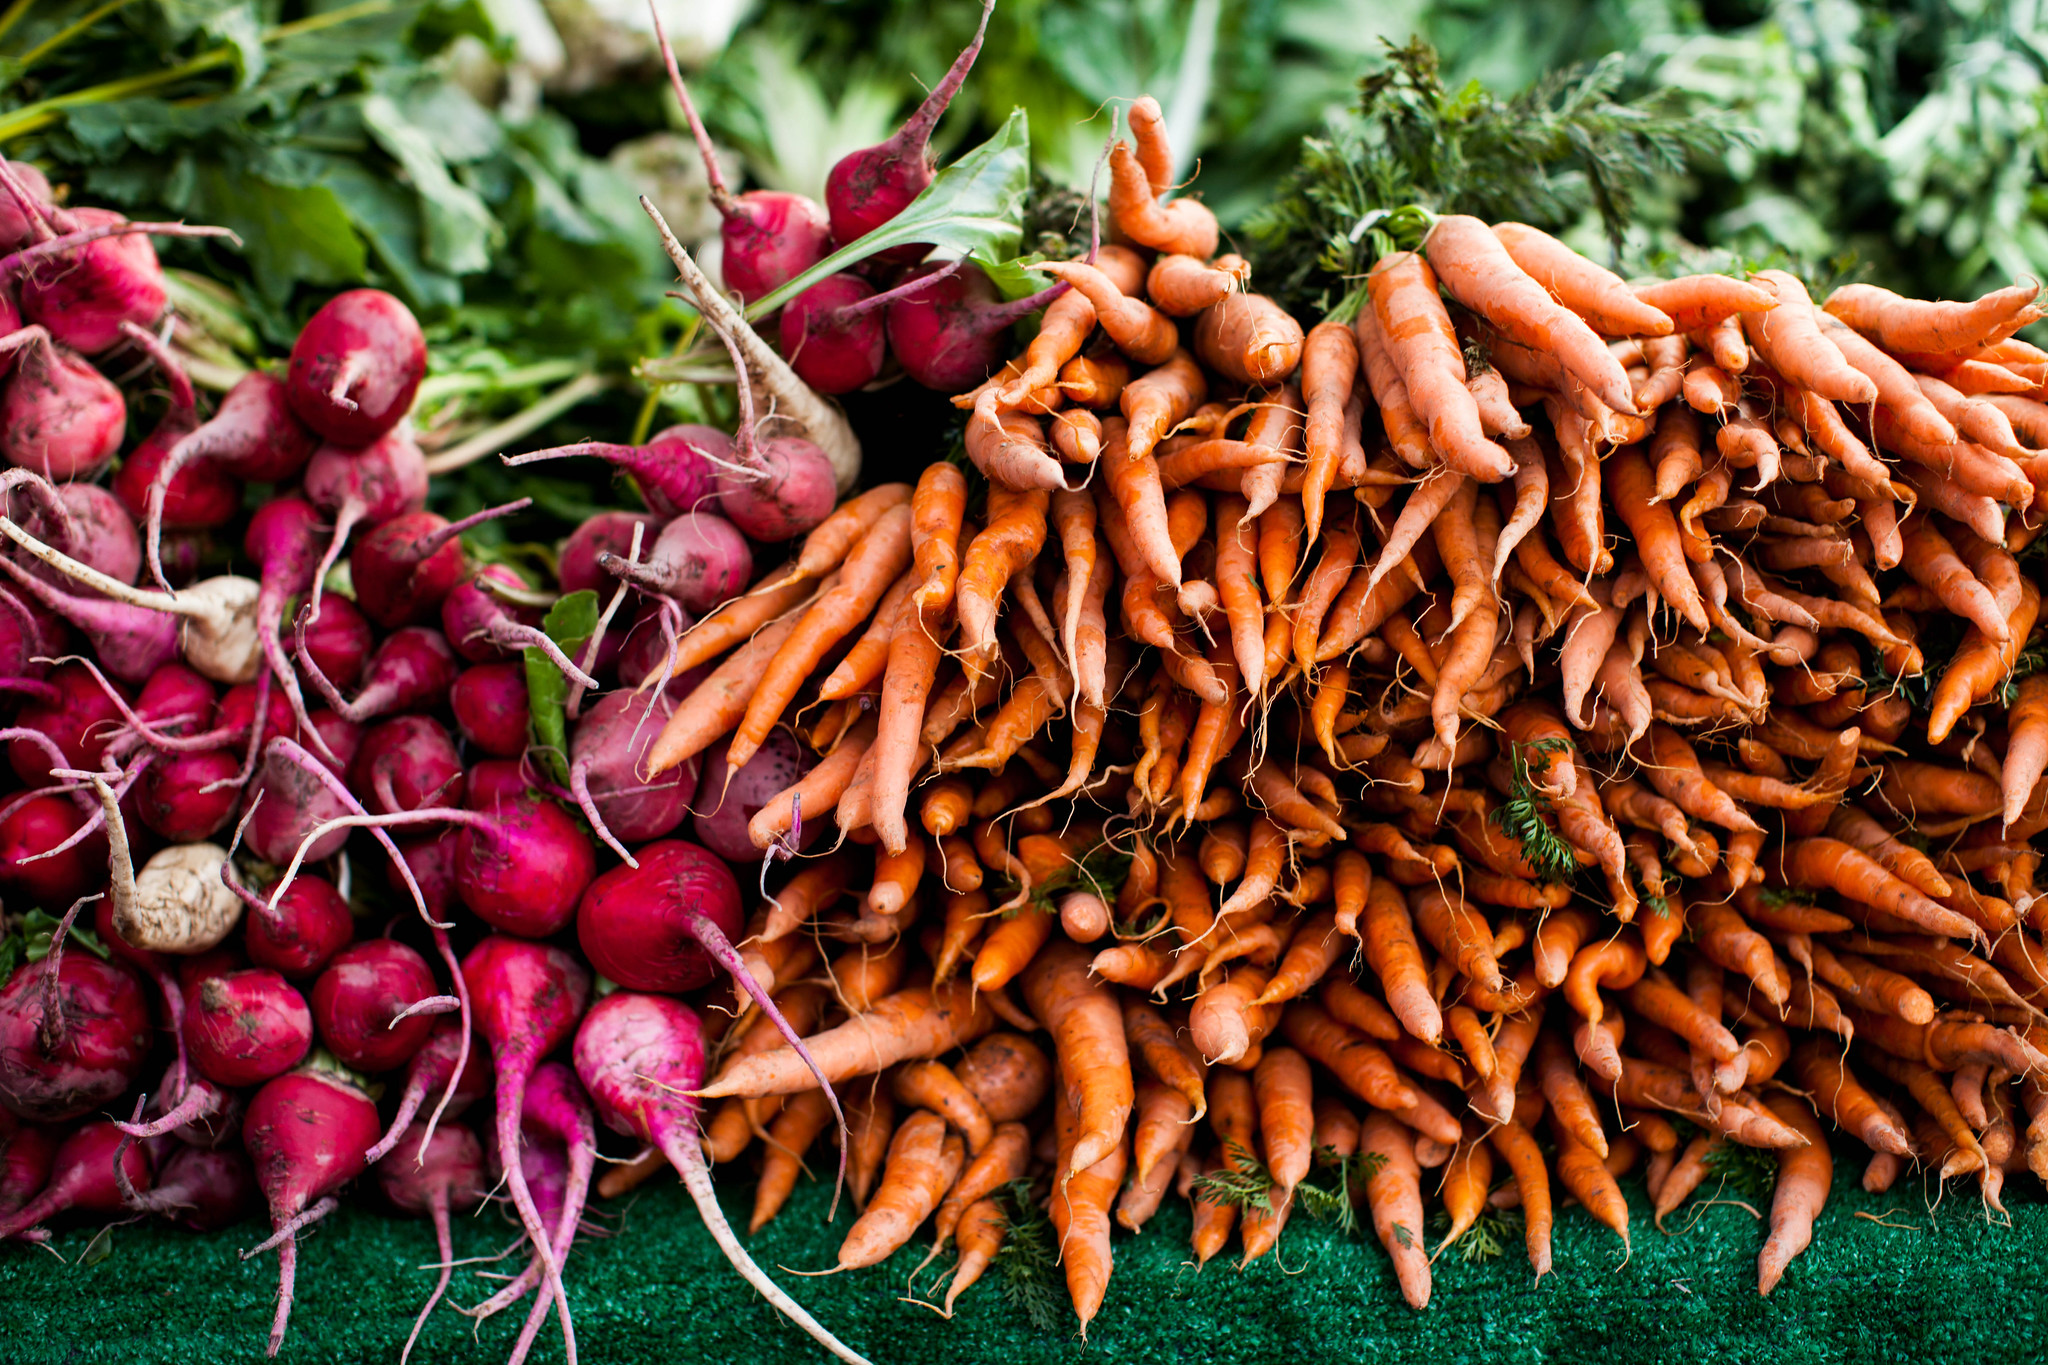 carrots at the farmer's market